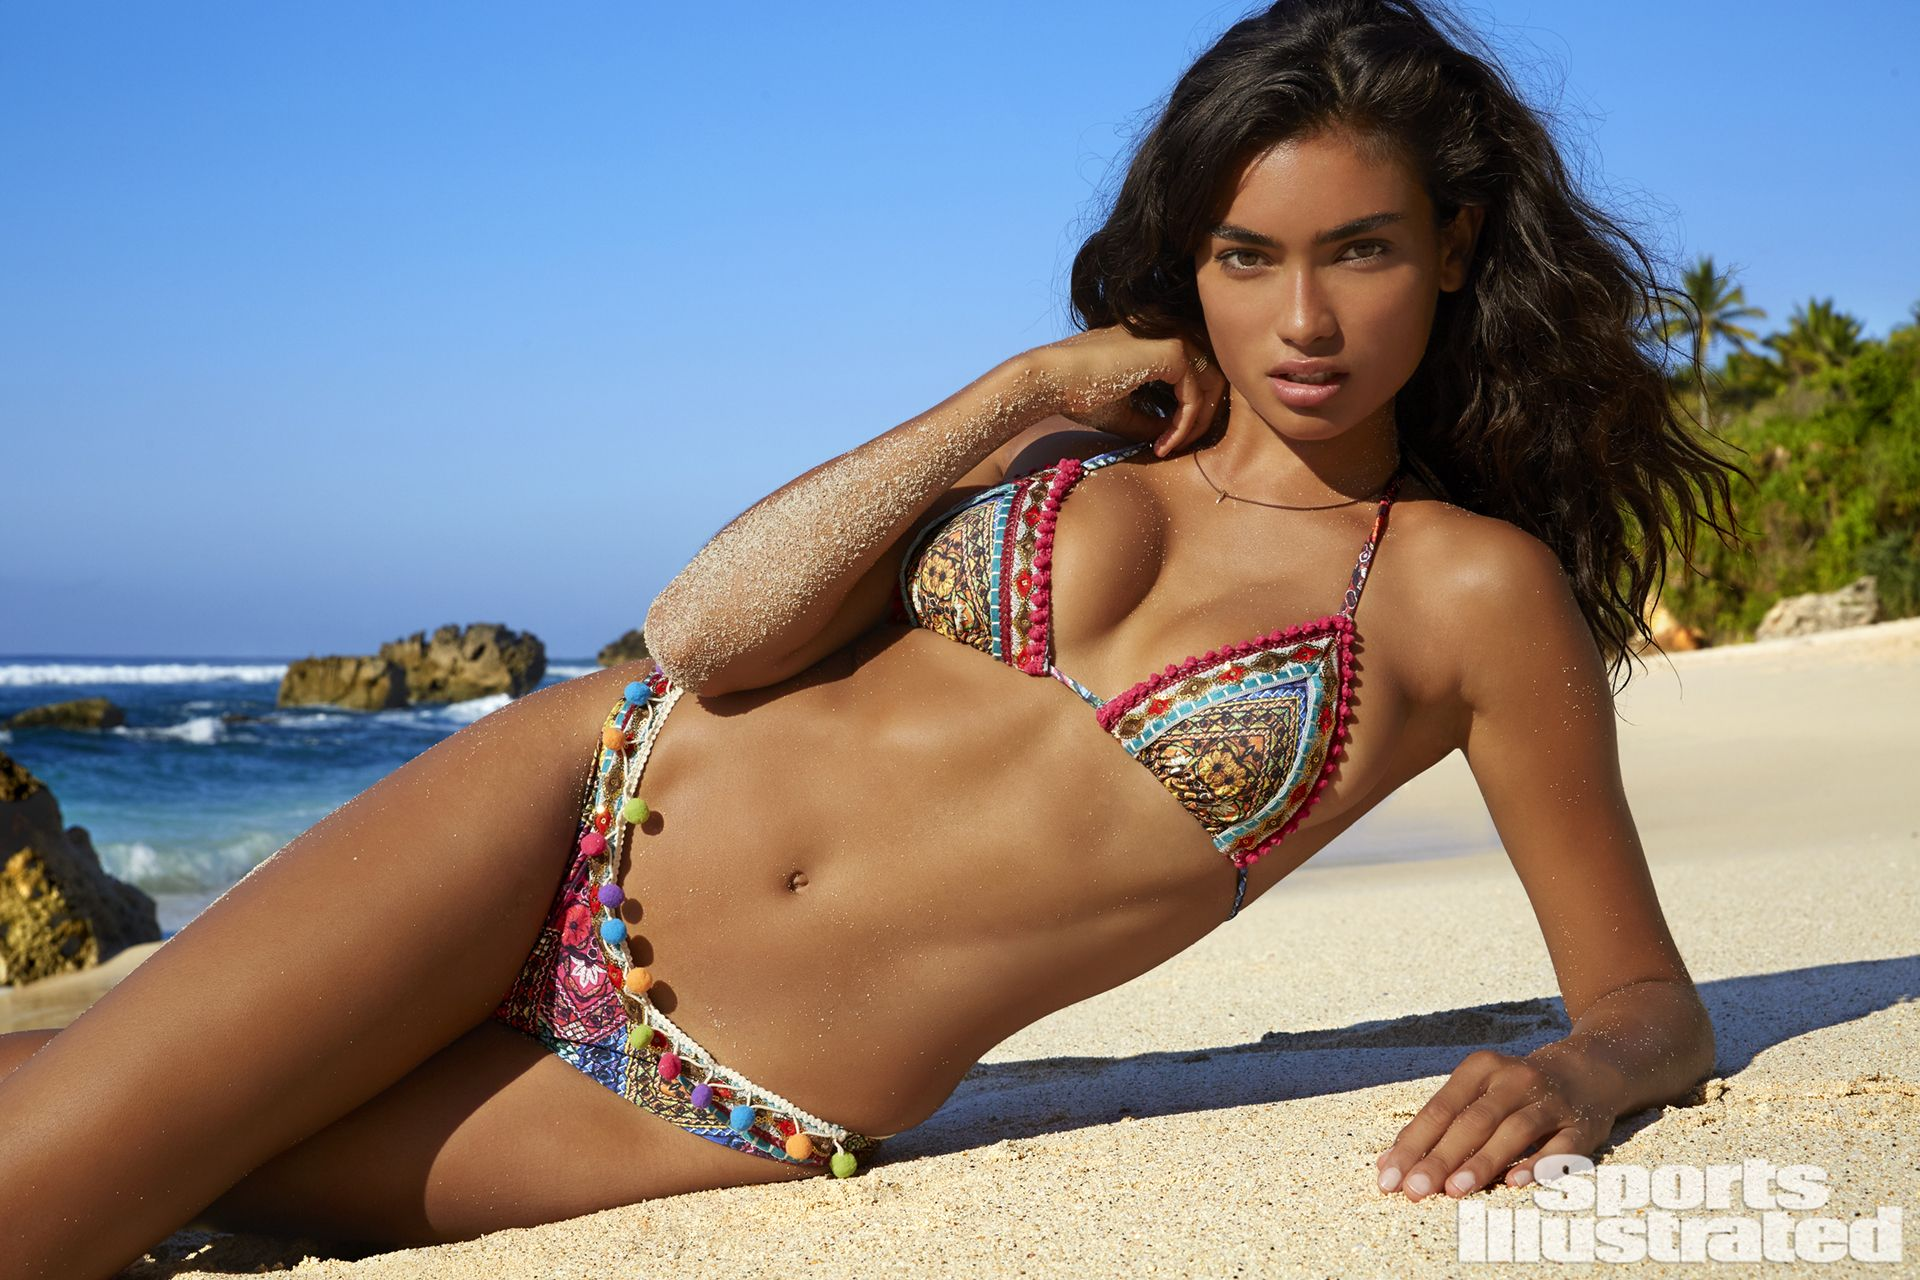 ZING! Model Kelly Gale Topless • Page 3 • Fappening Sauce